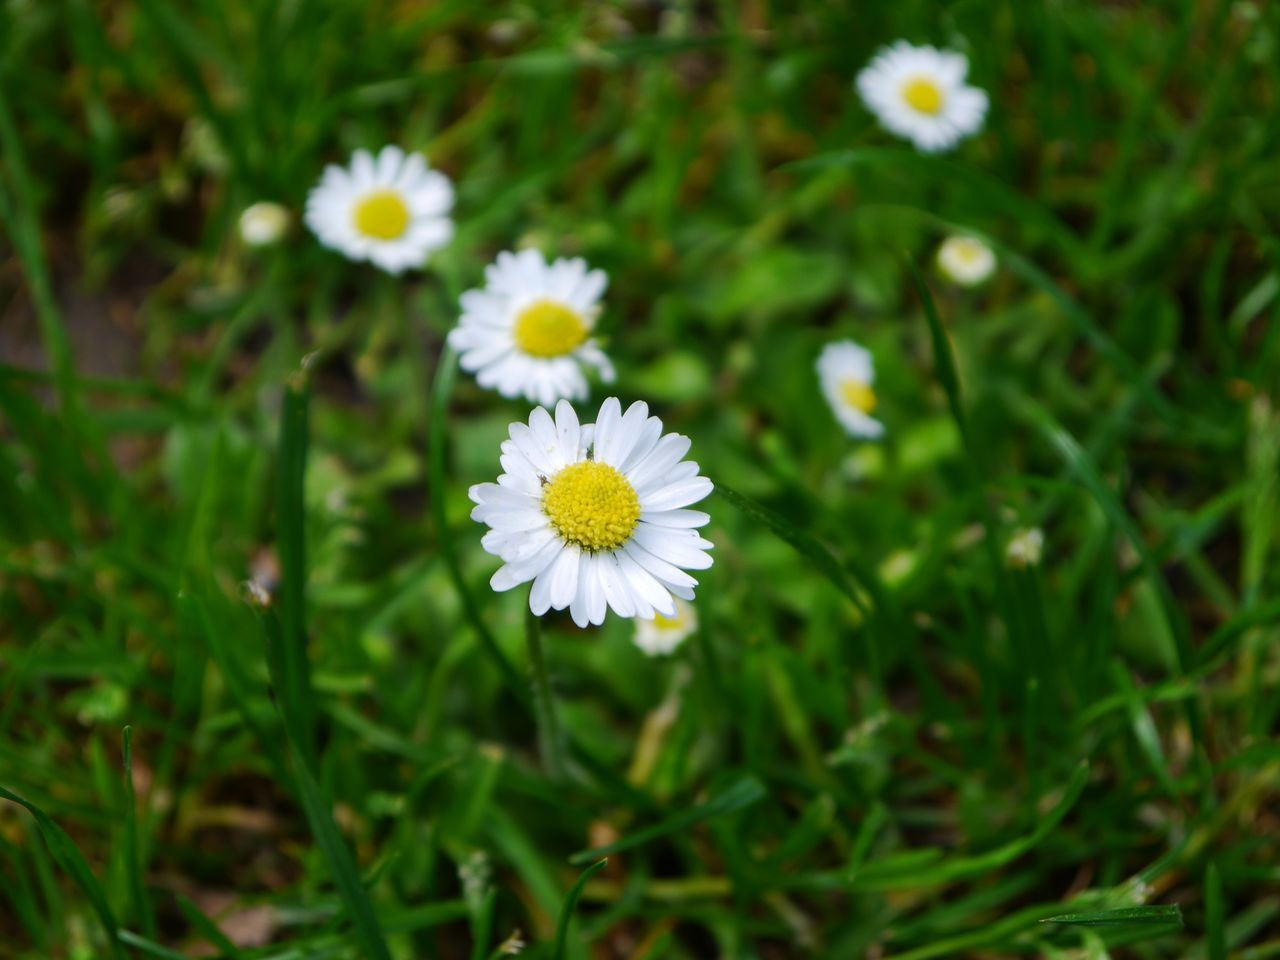 High Angle View Of White Daisies Blooming On Field